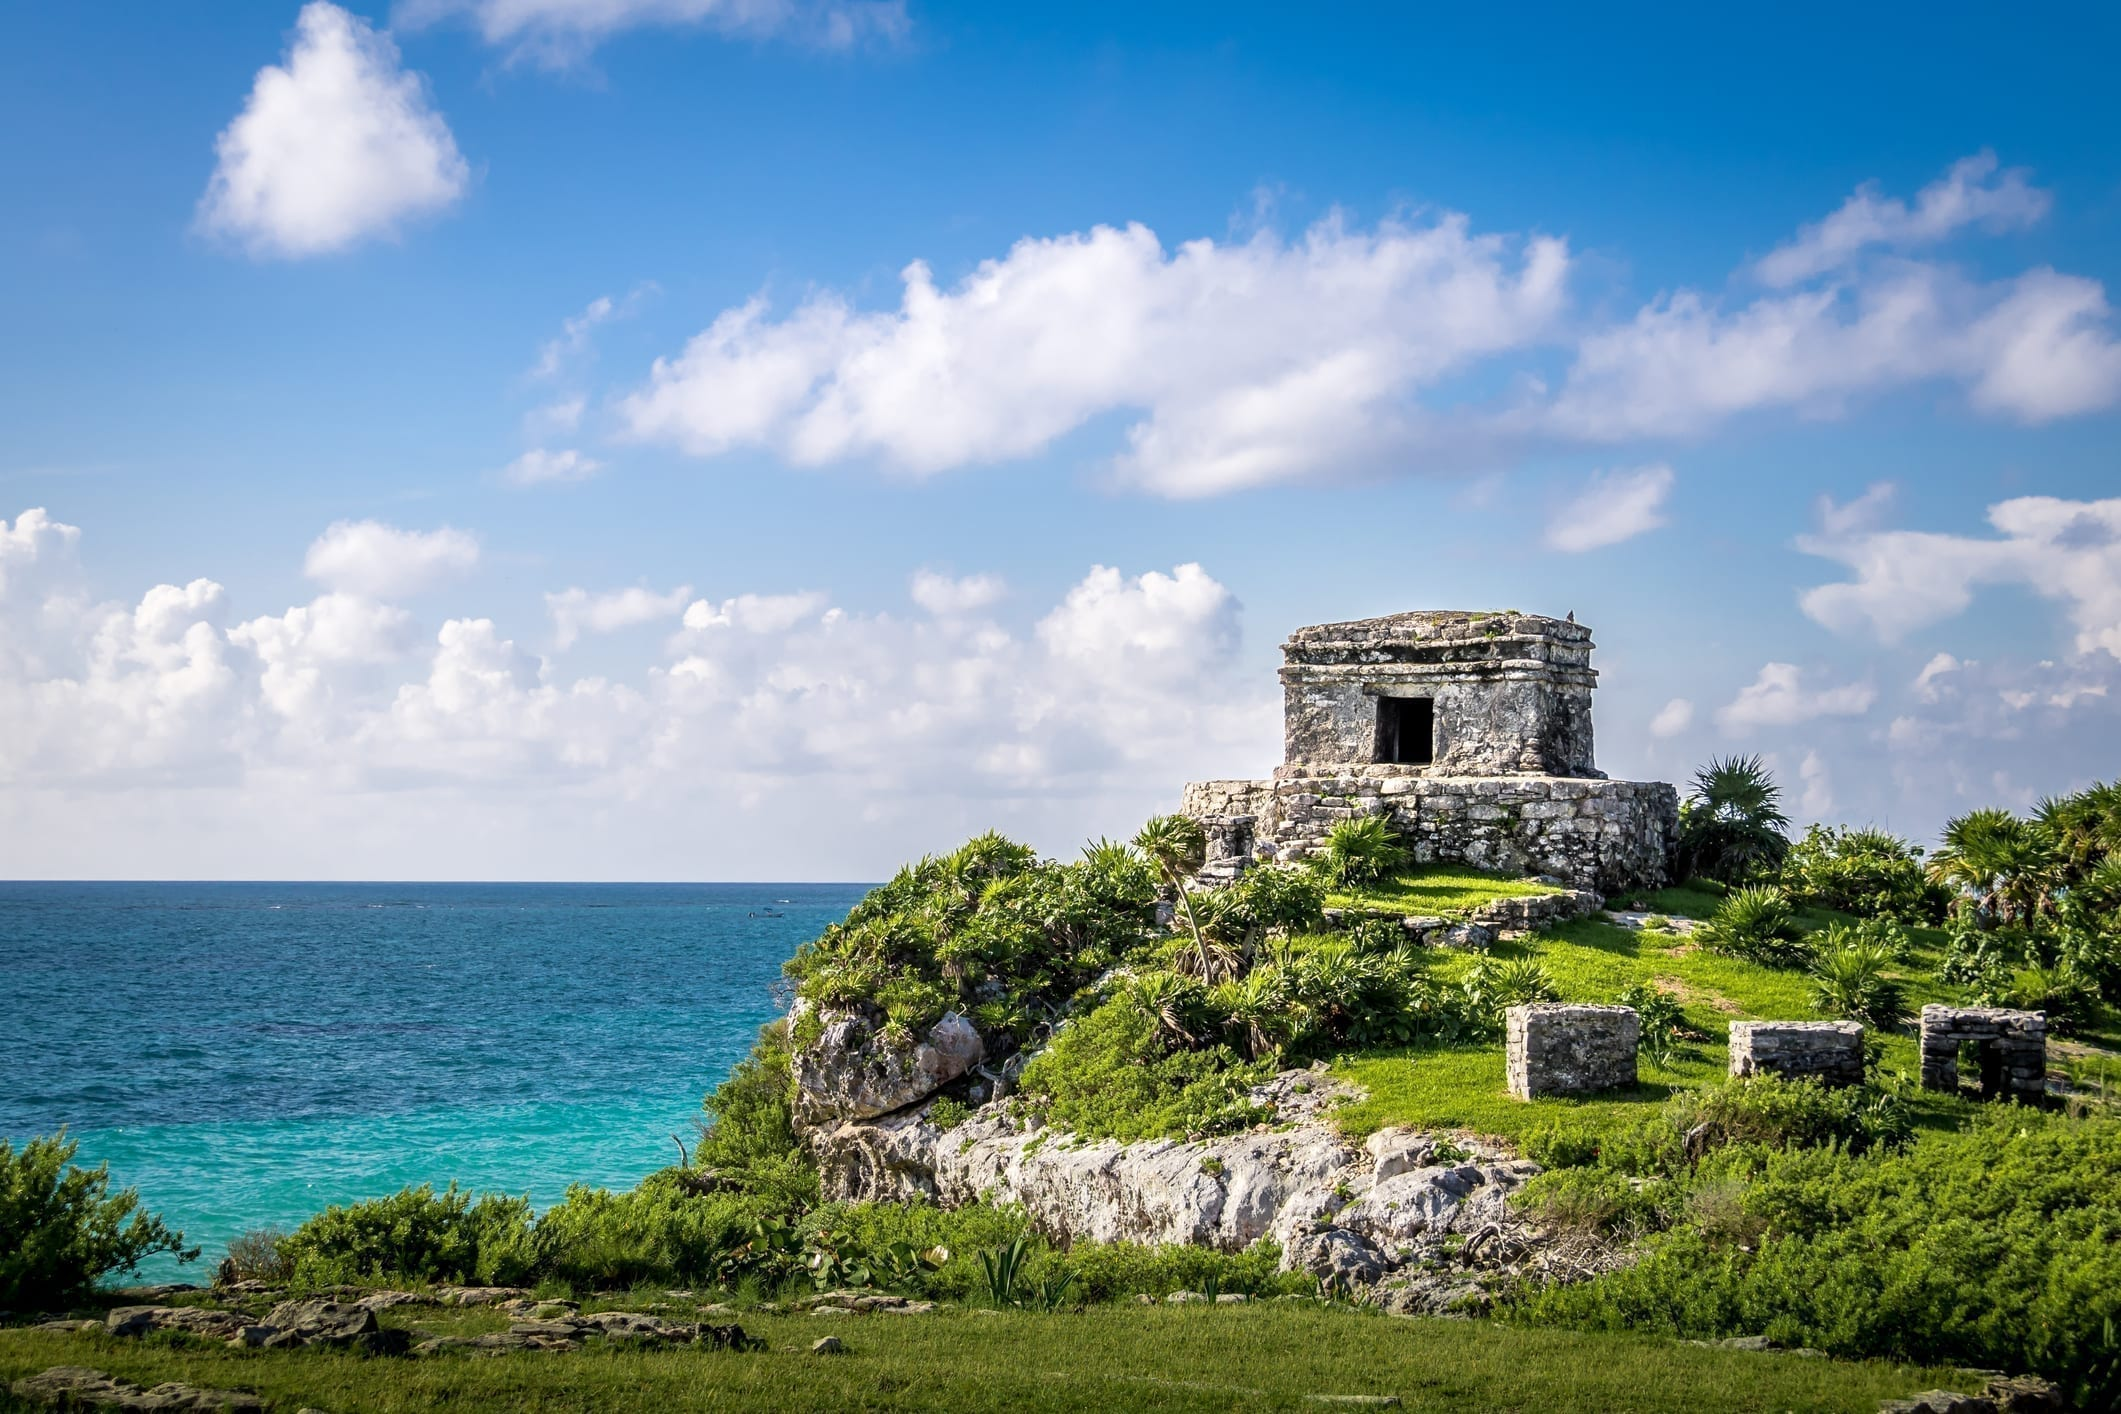 Temple and Caribbean sea - Mayan Ruins of Tulum, Mexico